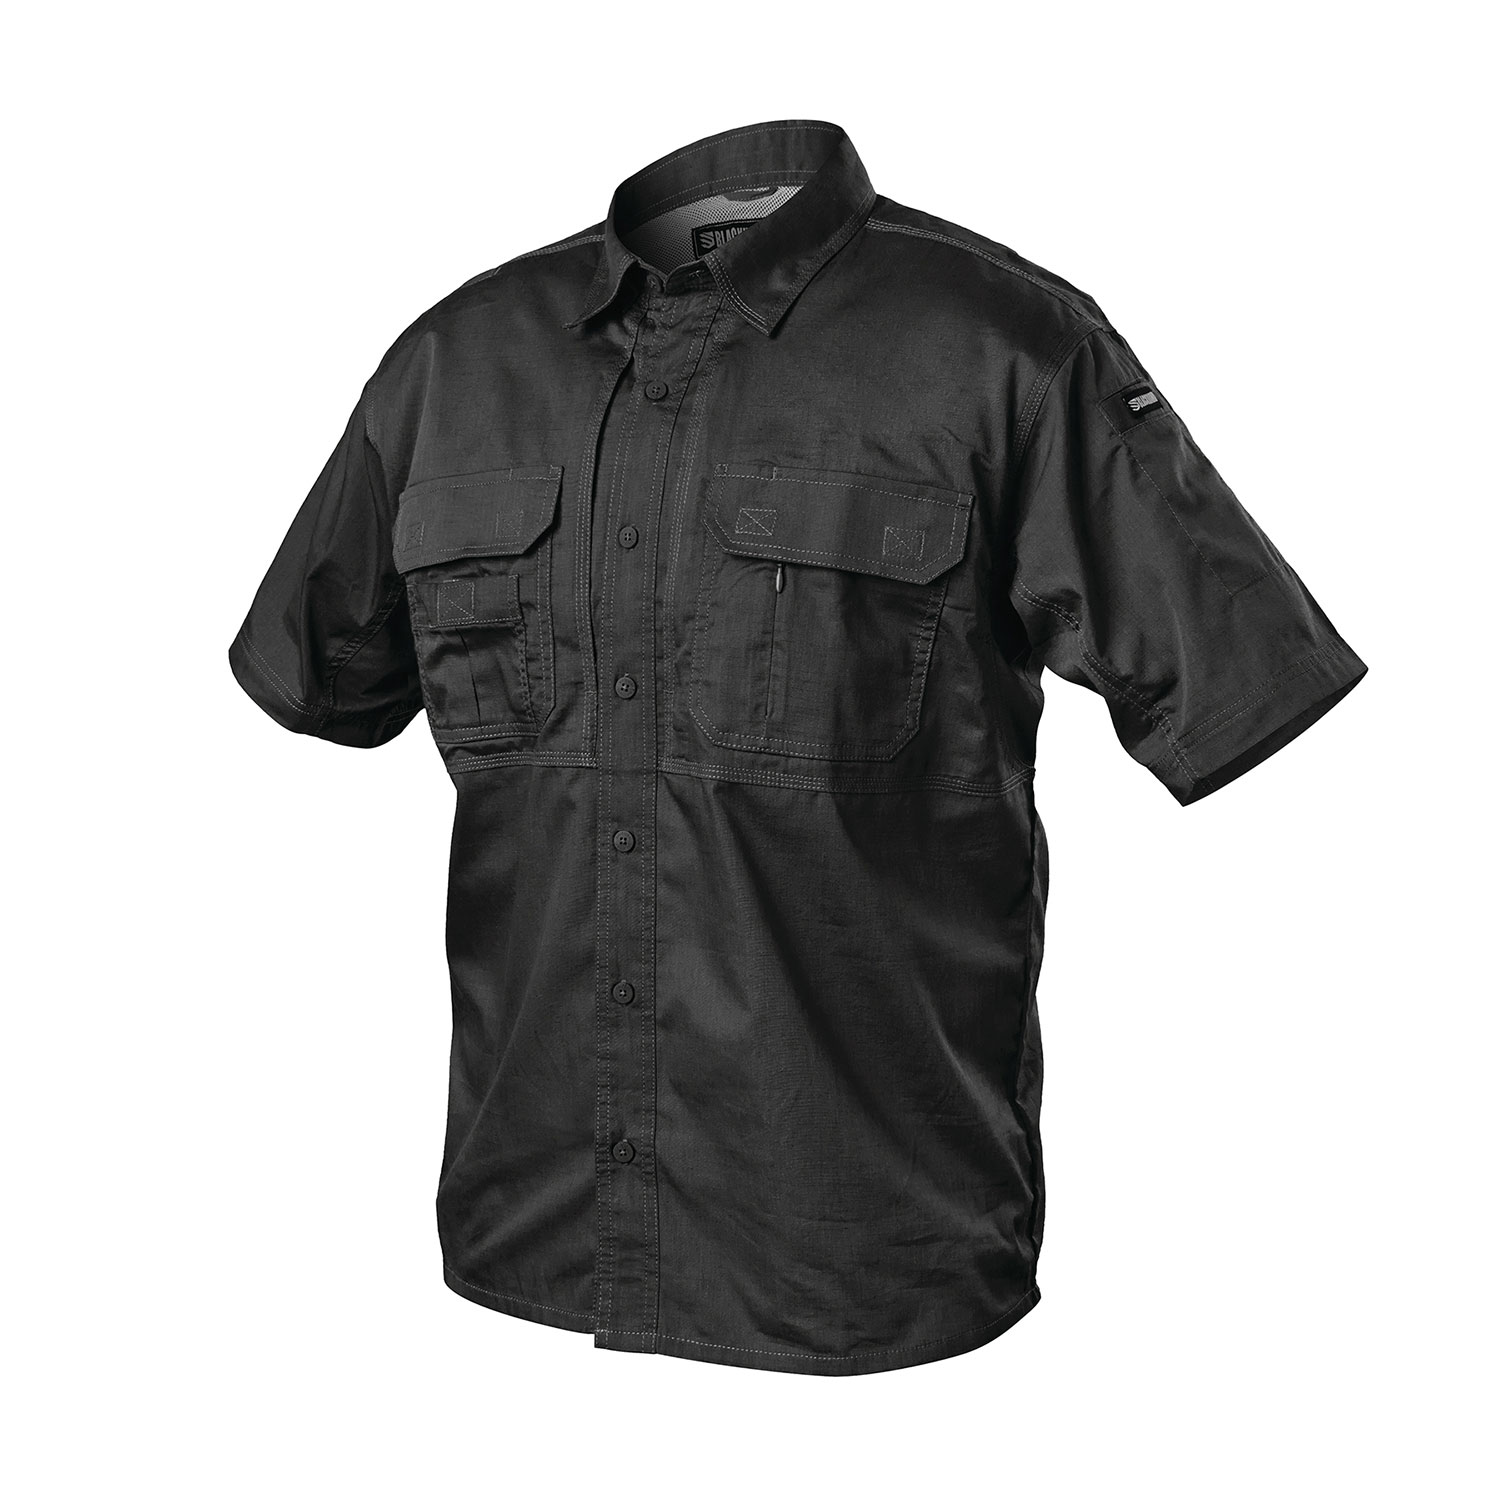 BLACKHAWK! Pursuit Short Sleeve Shirt